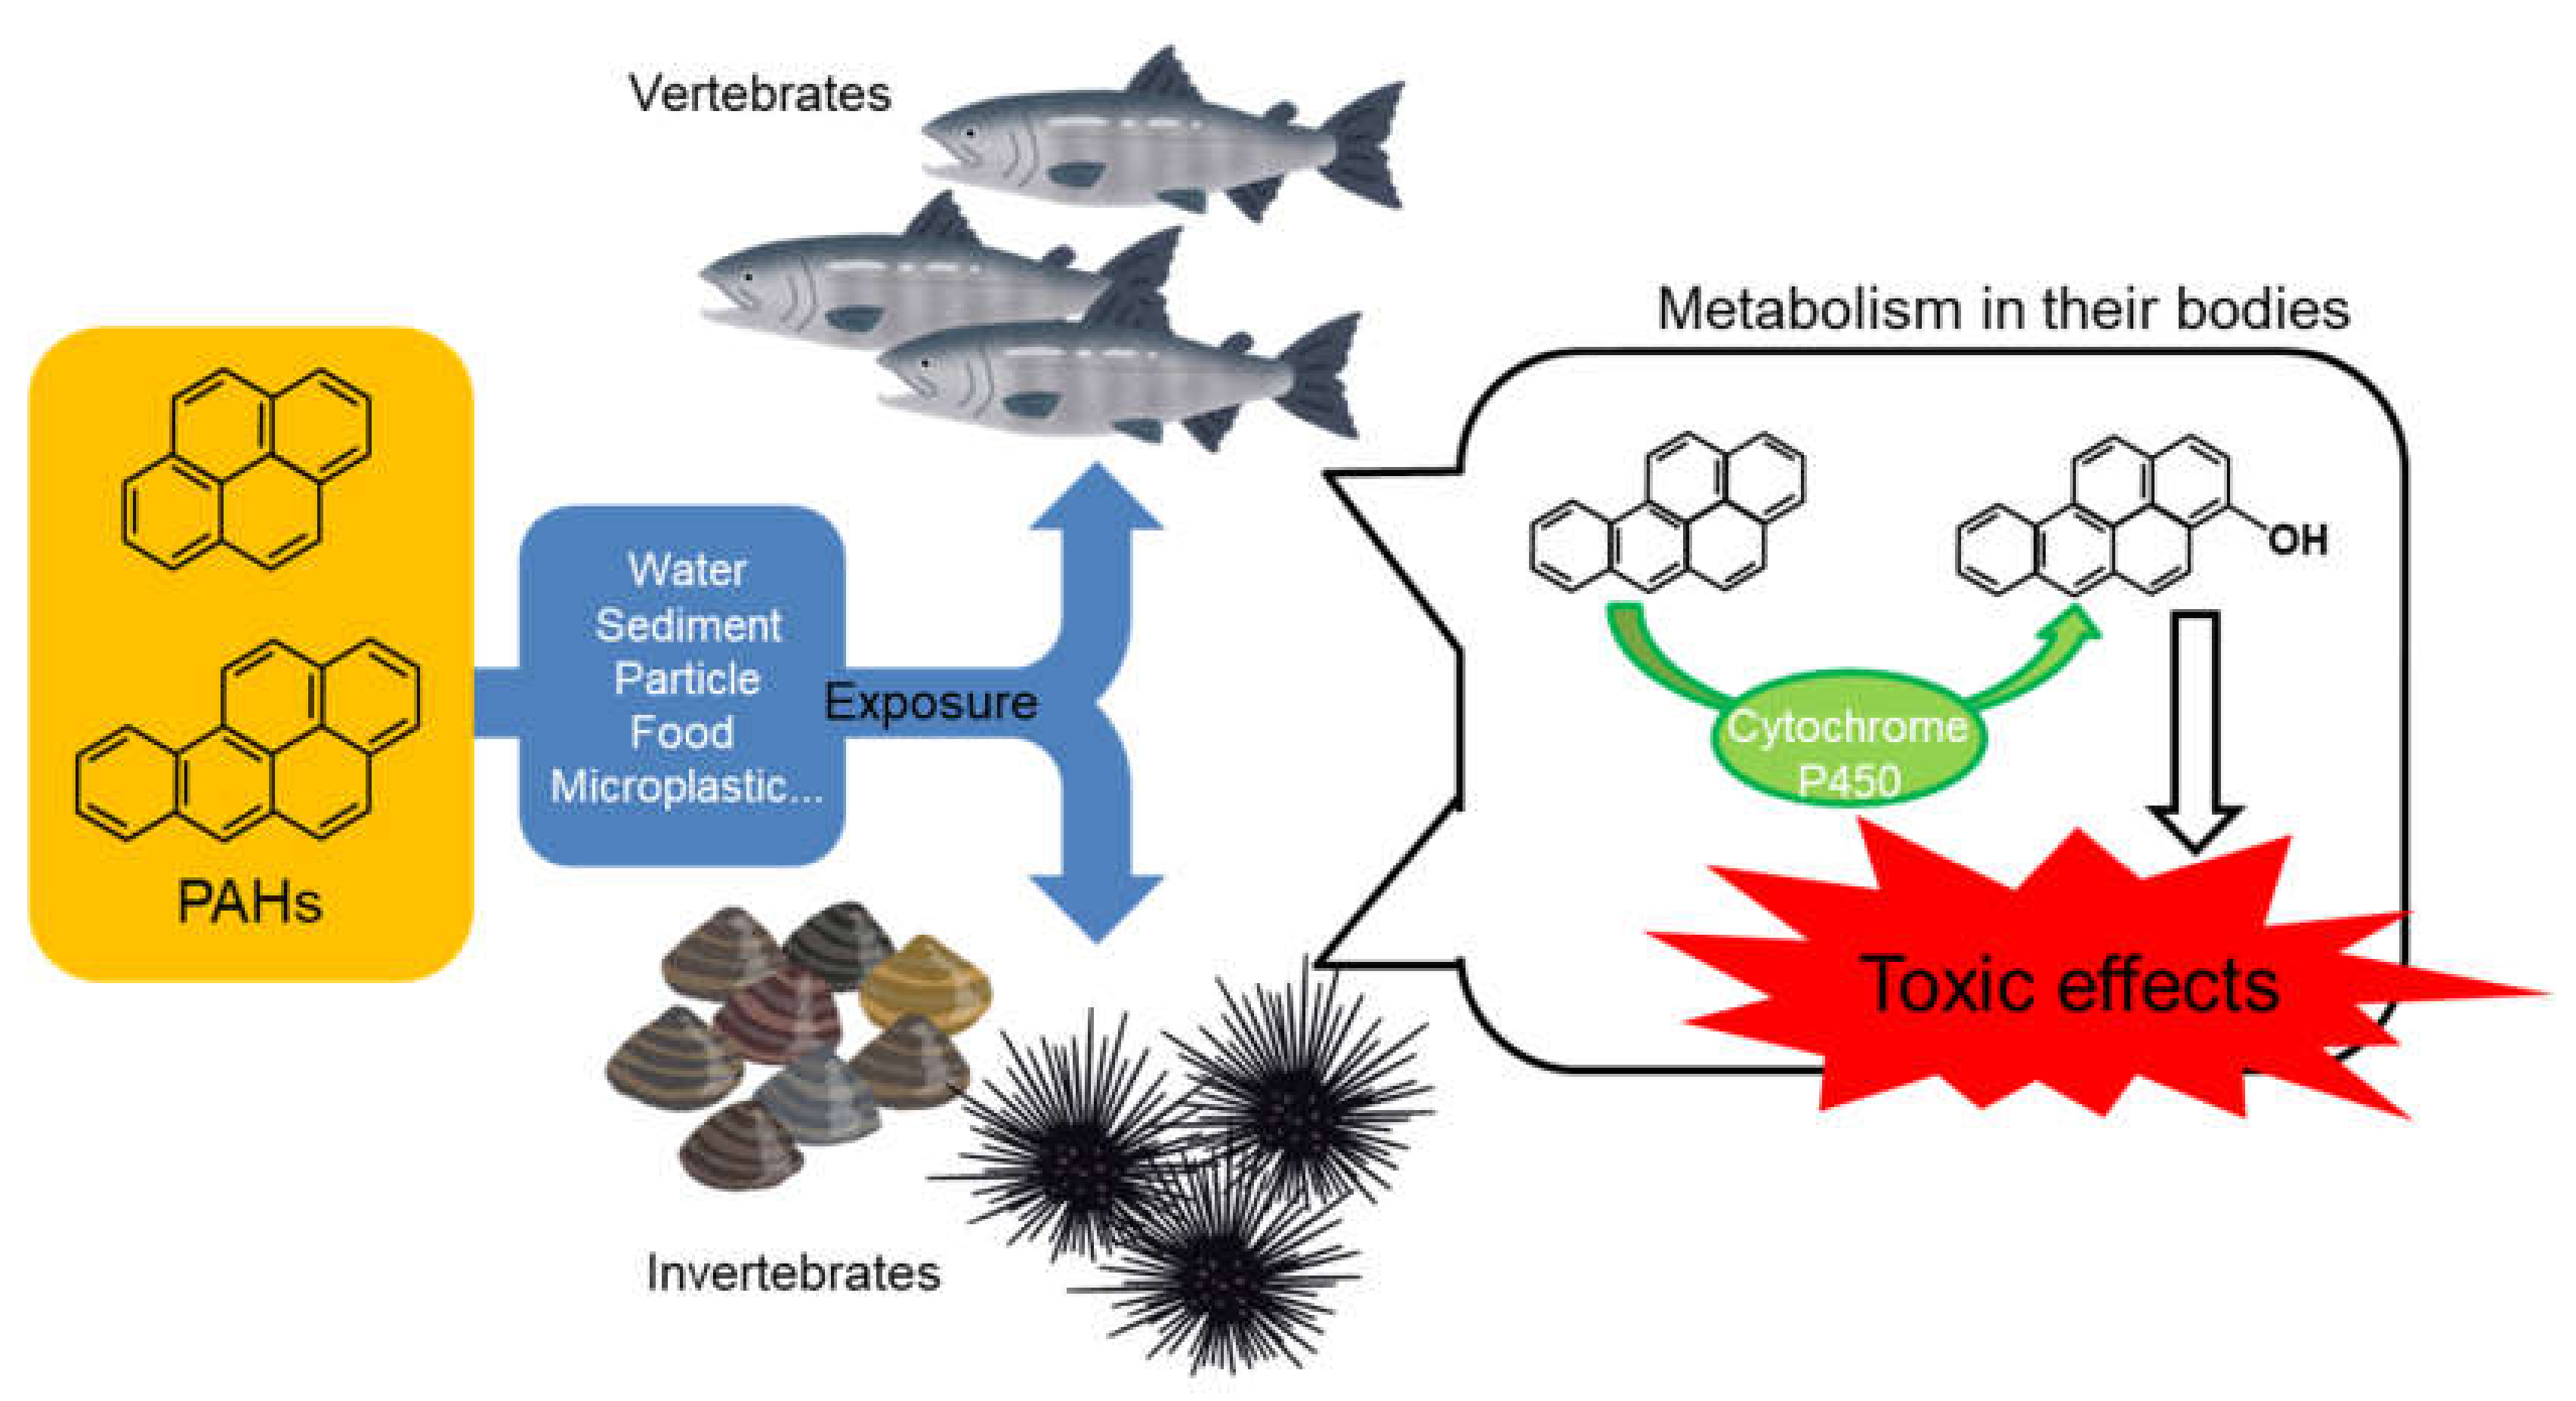 Ijerph Free Full Text Toxicities Of Polycyclic Aromatic Hydrocarbons For Aquatic Animals Html